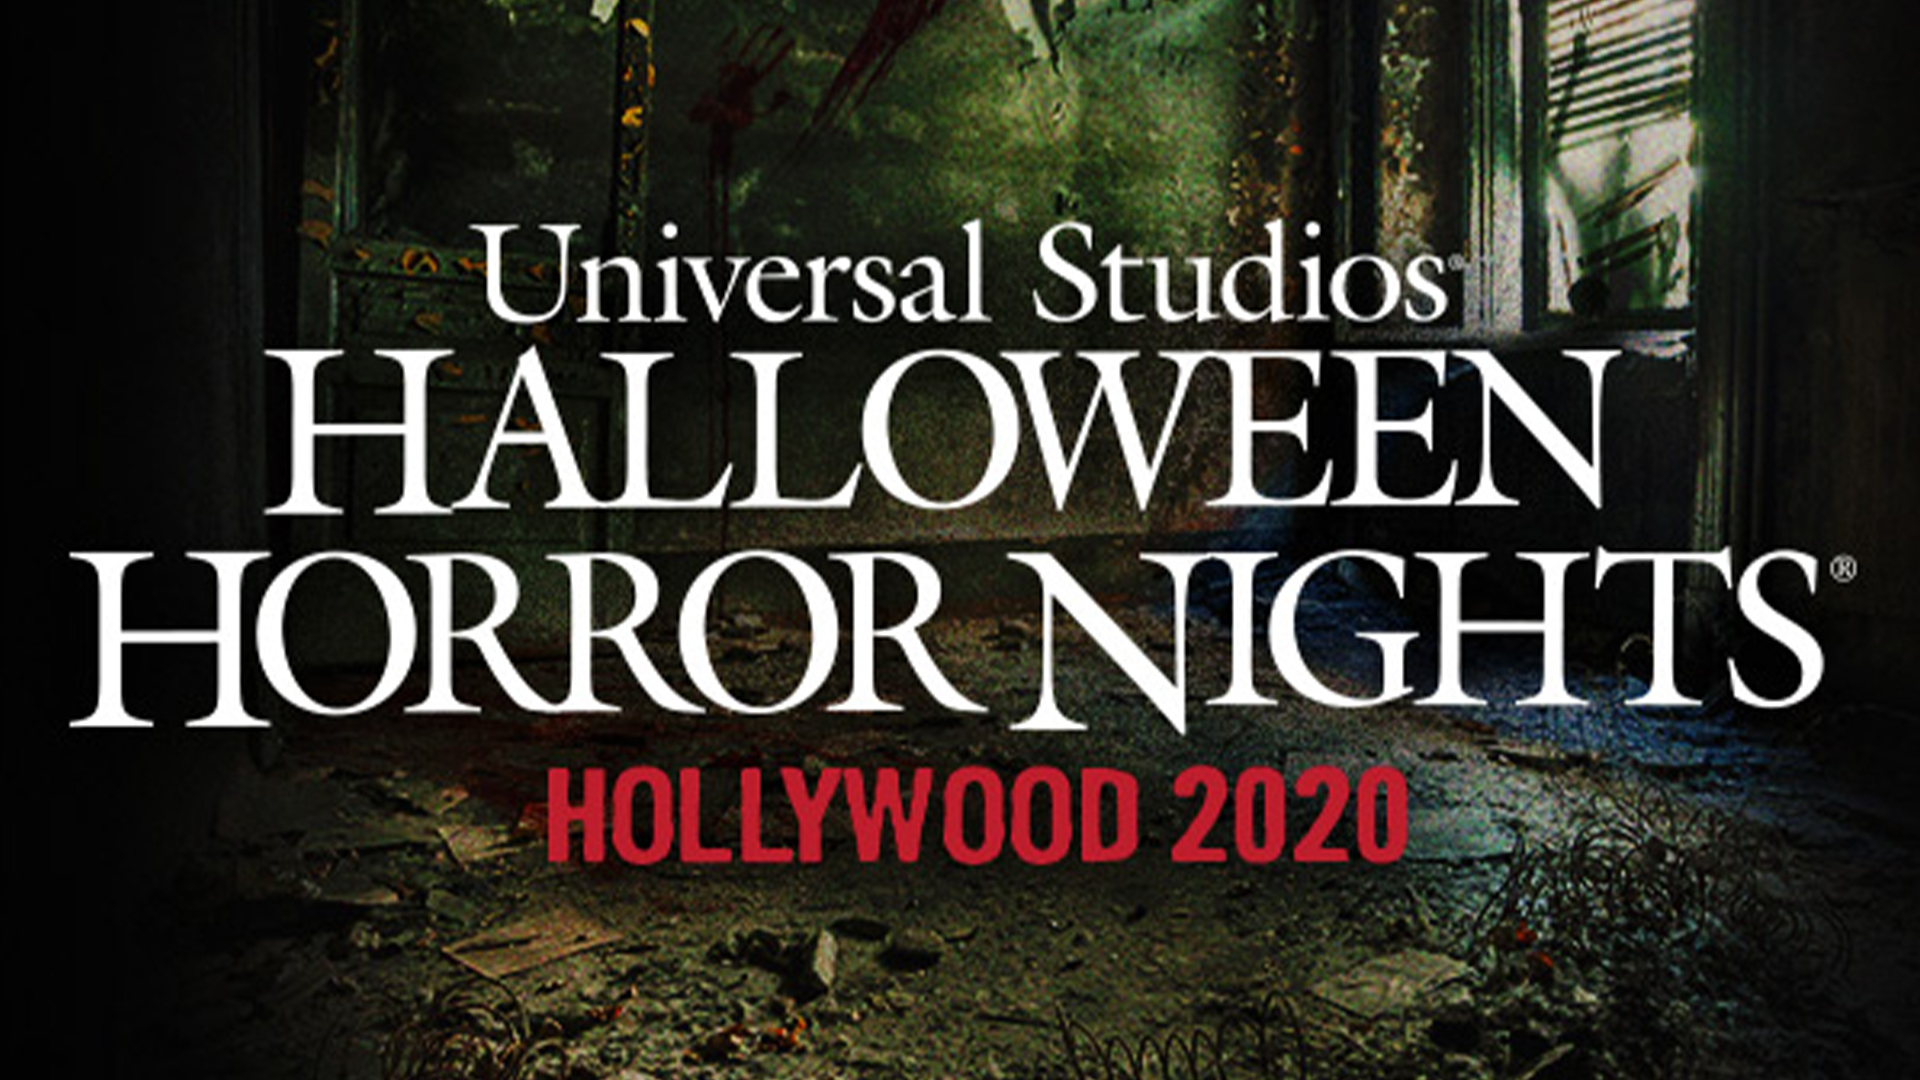 Coupons For Halloween Horror Nights 2020 Halloween Horror Nights canceled at Universal Studios Hollywood